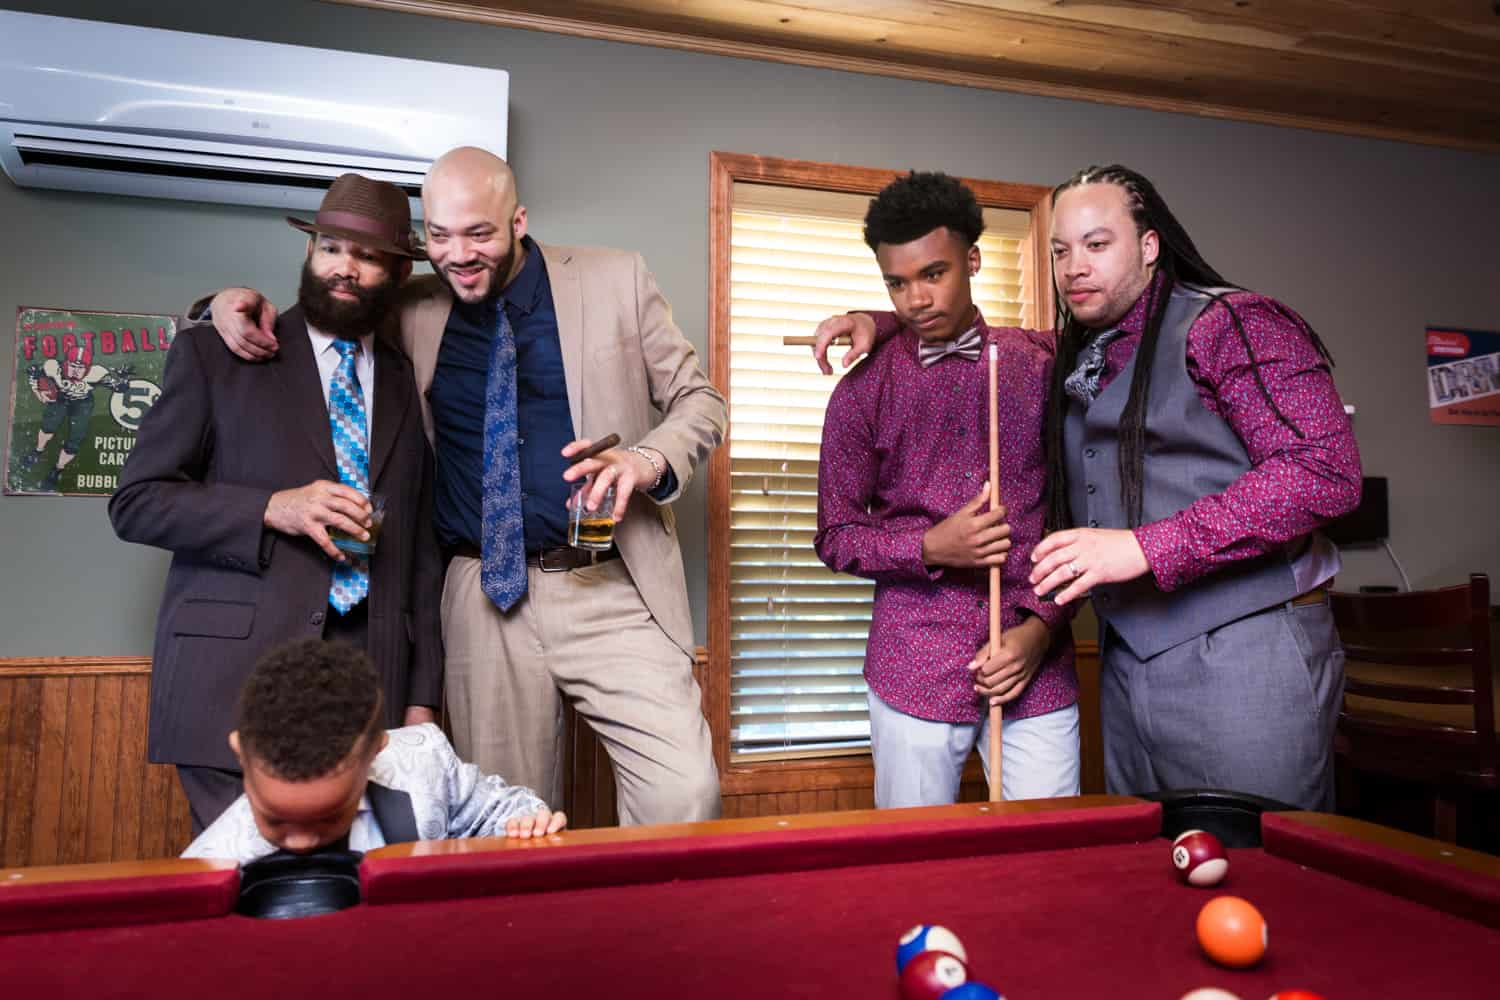 Male family members watching pool table during a family reunion portrait